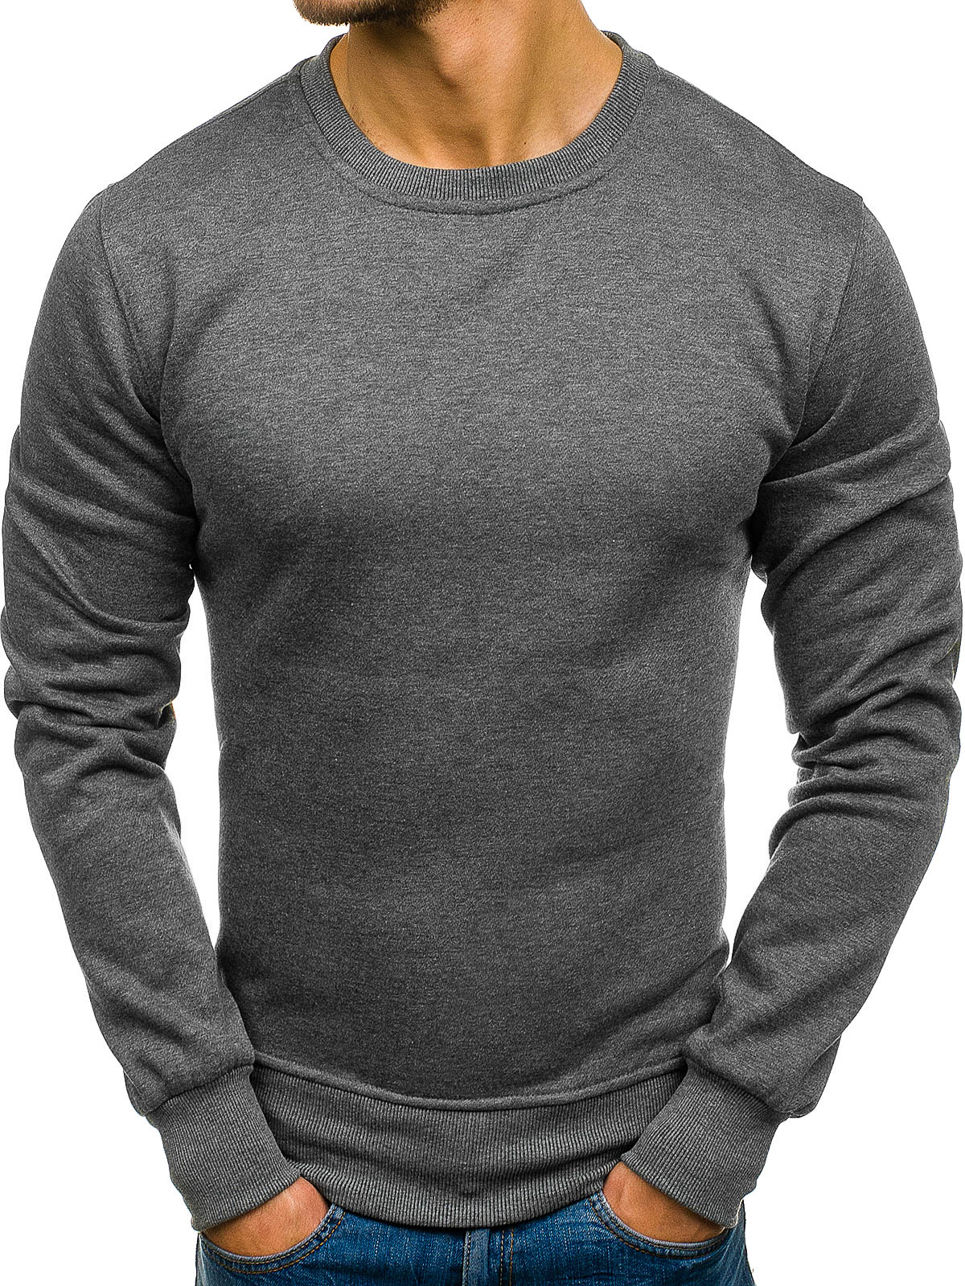 ZOGAA Men Thick T Shirts Long Sleeve Shirt Solid Color Cotton Casual Tshirt Clothing 2018 Streetwear Innercoat